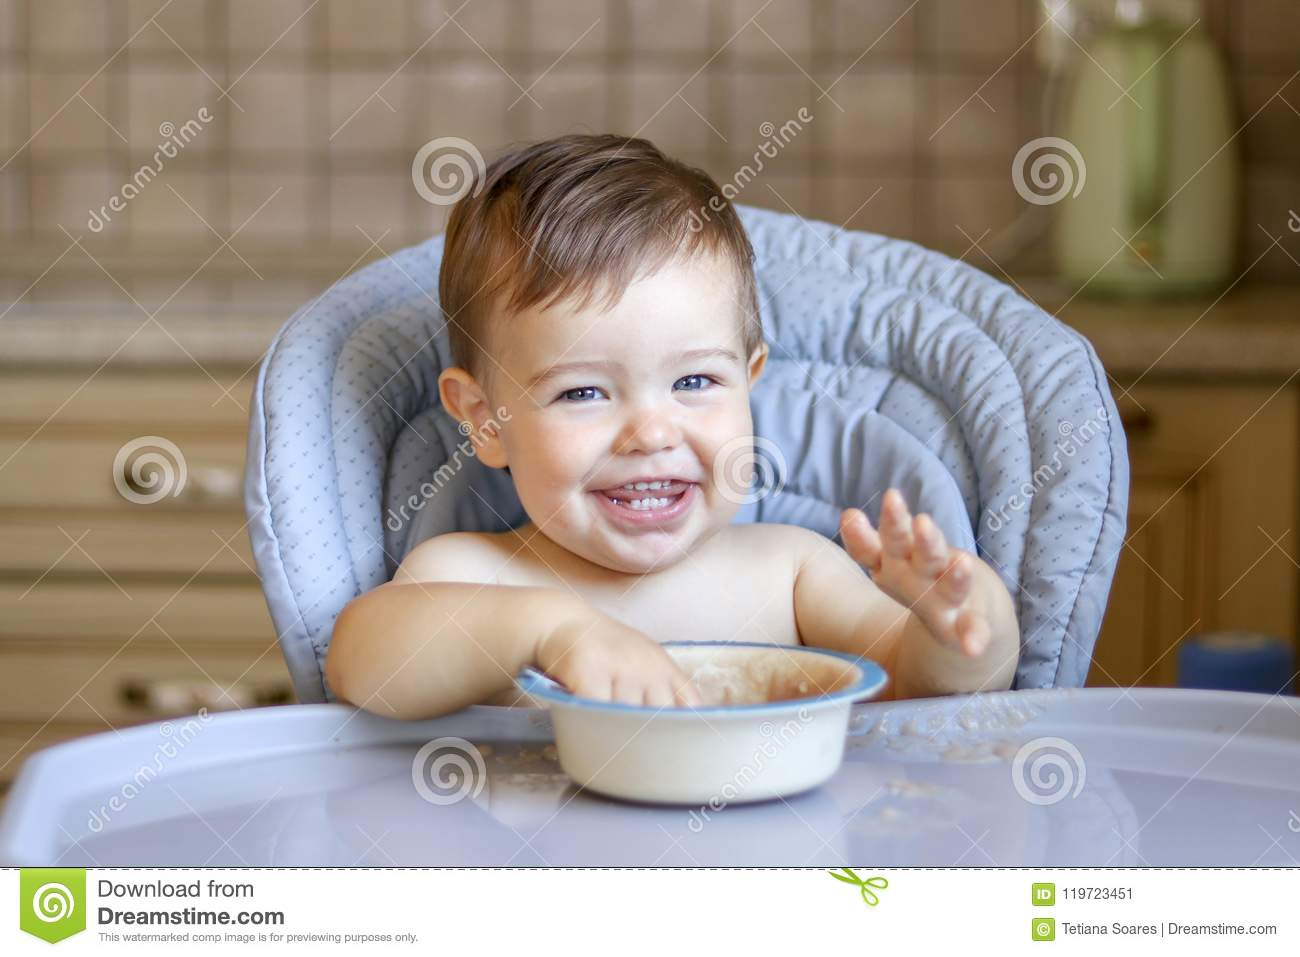 Smiling happy baby boy with eight teeth eating porridge wit his hands looking at camera sitting at high feeding chair at kitchen